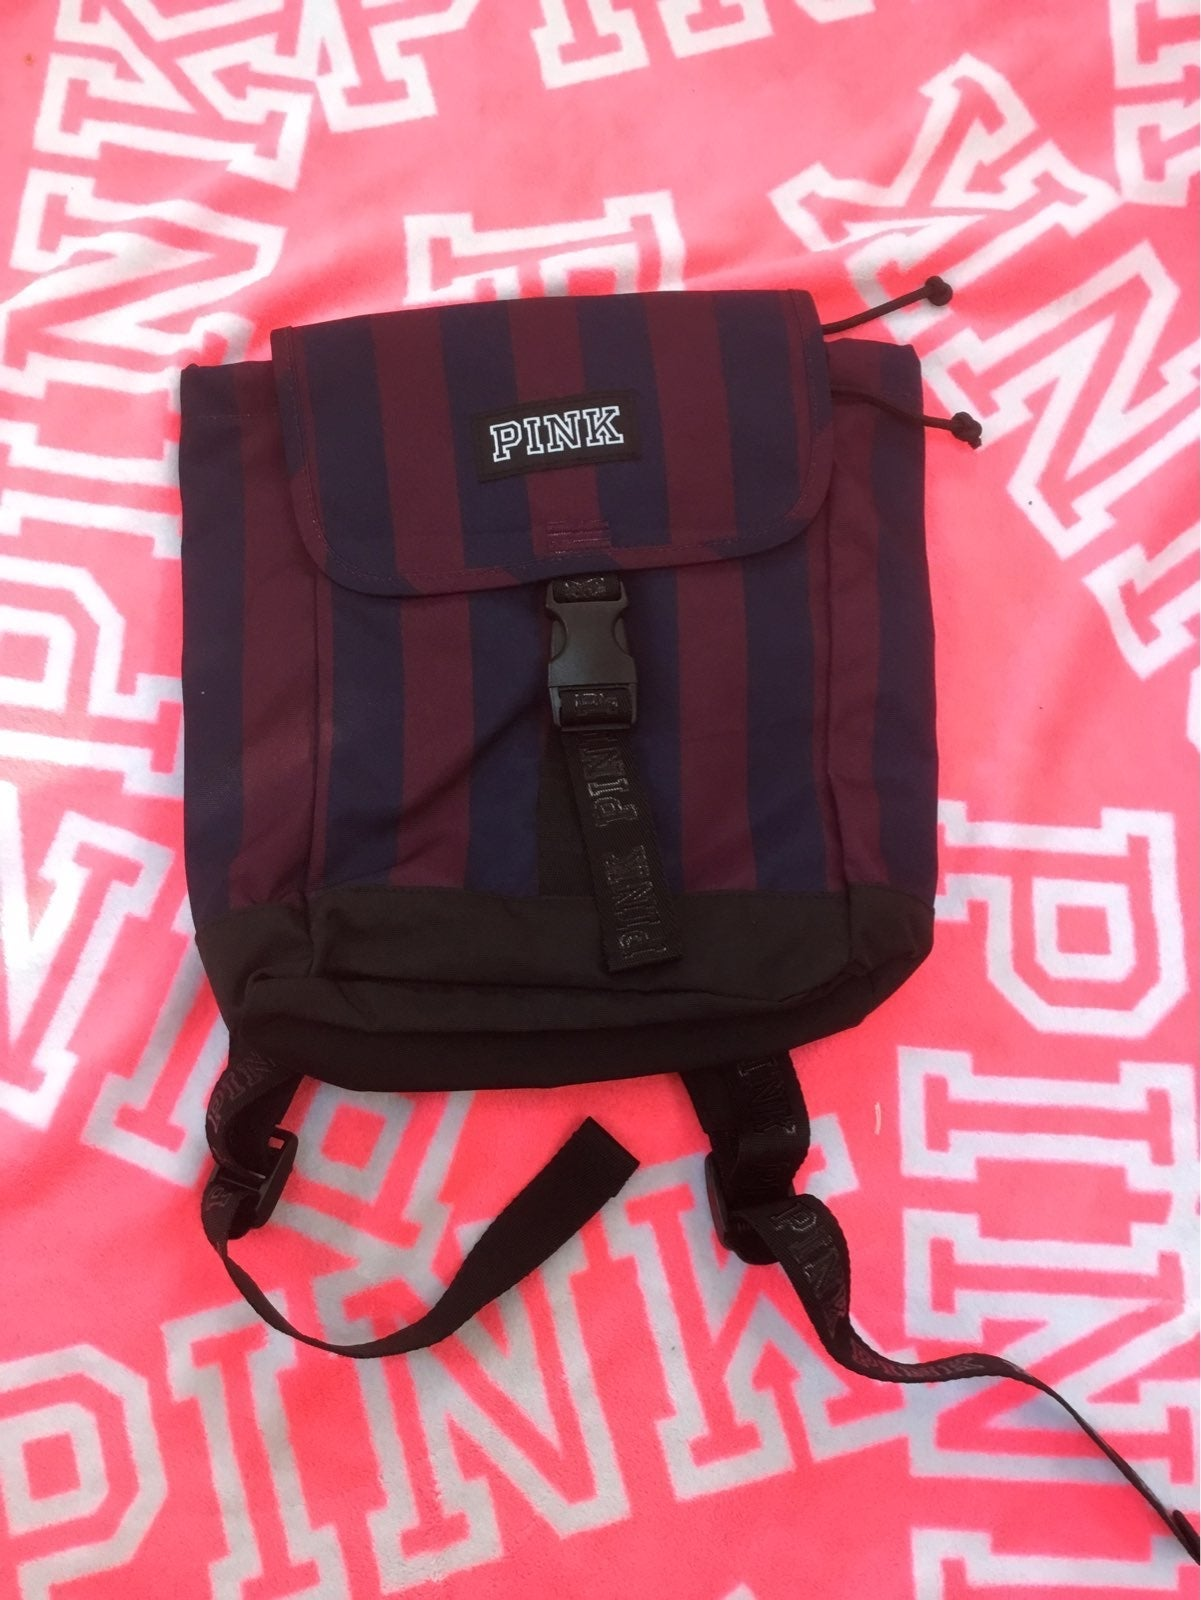 V.S.Pink Mini Backpack,New